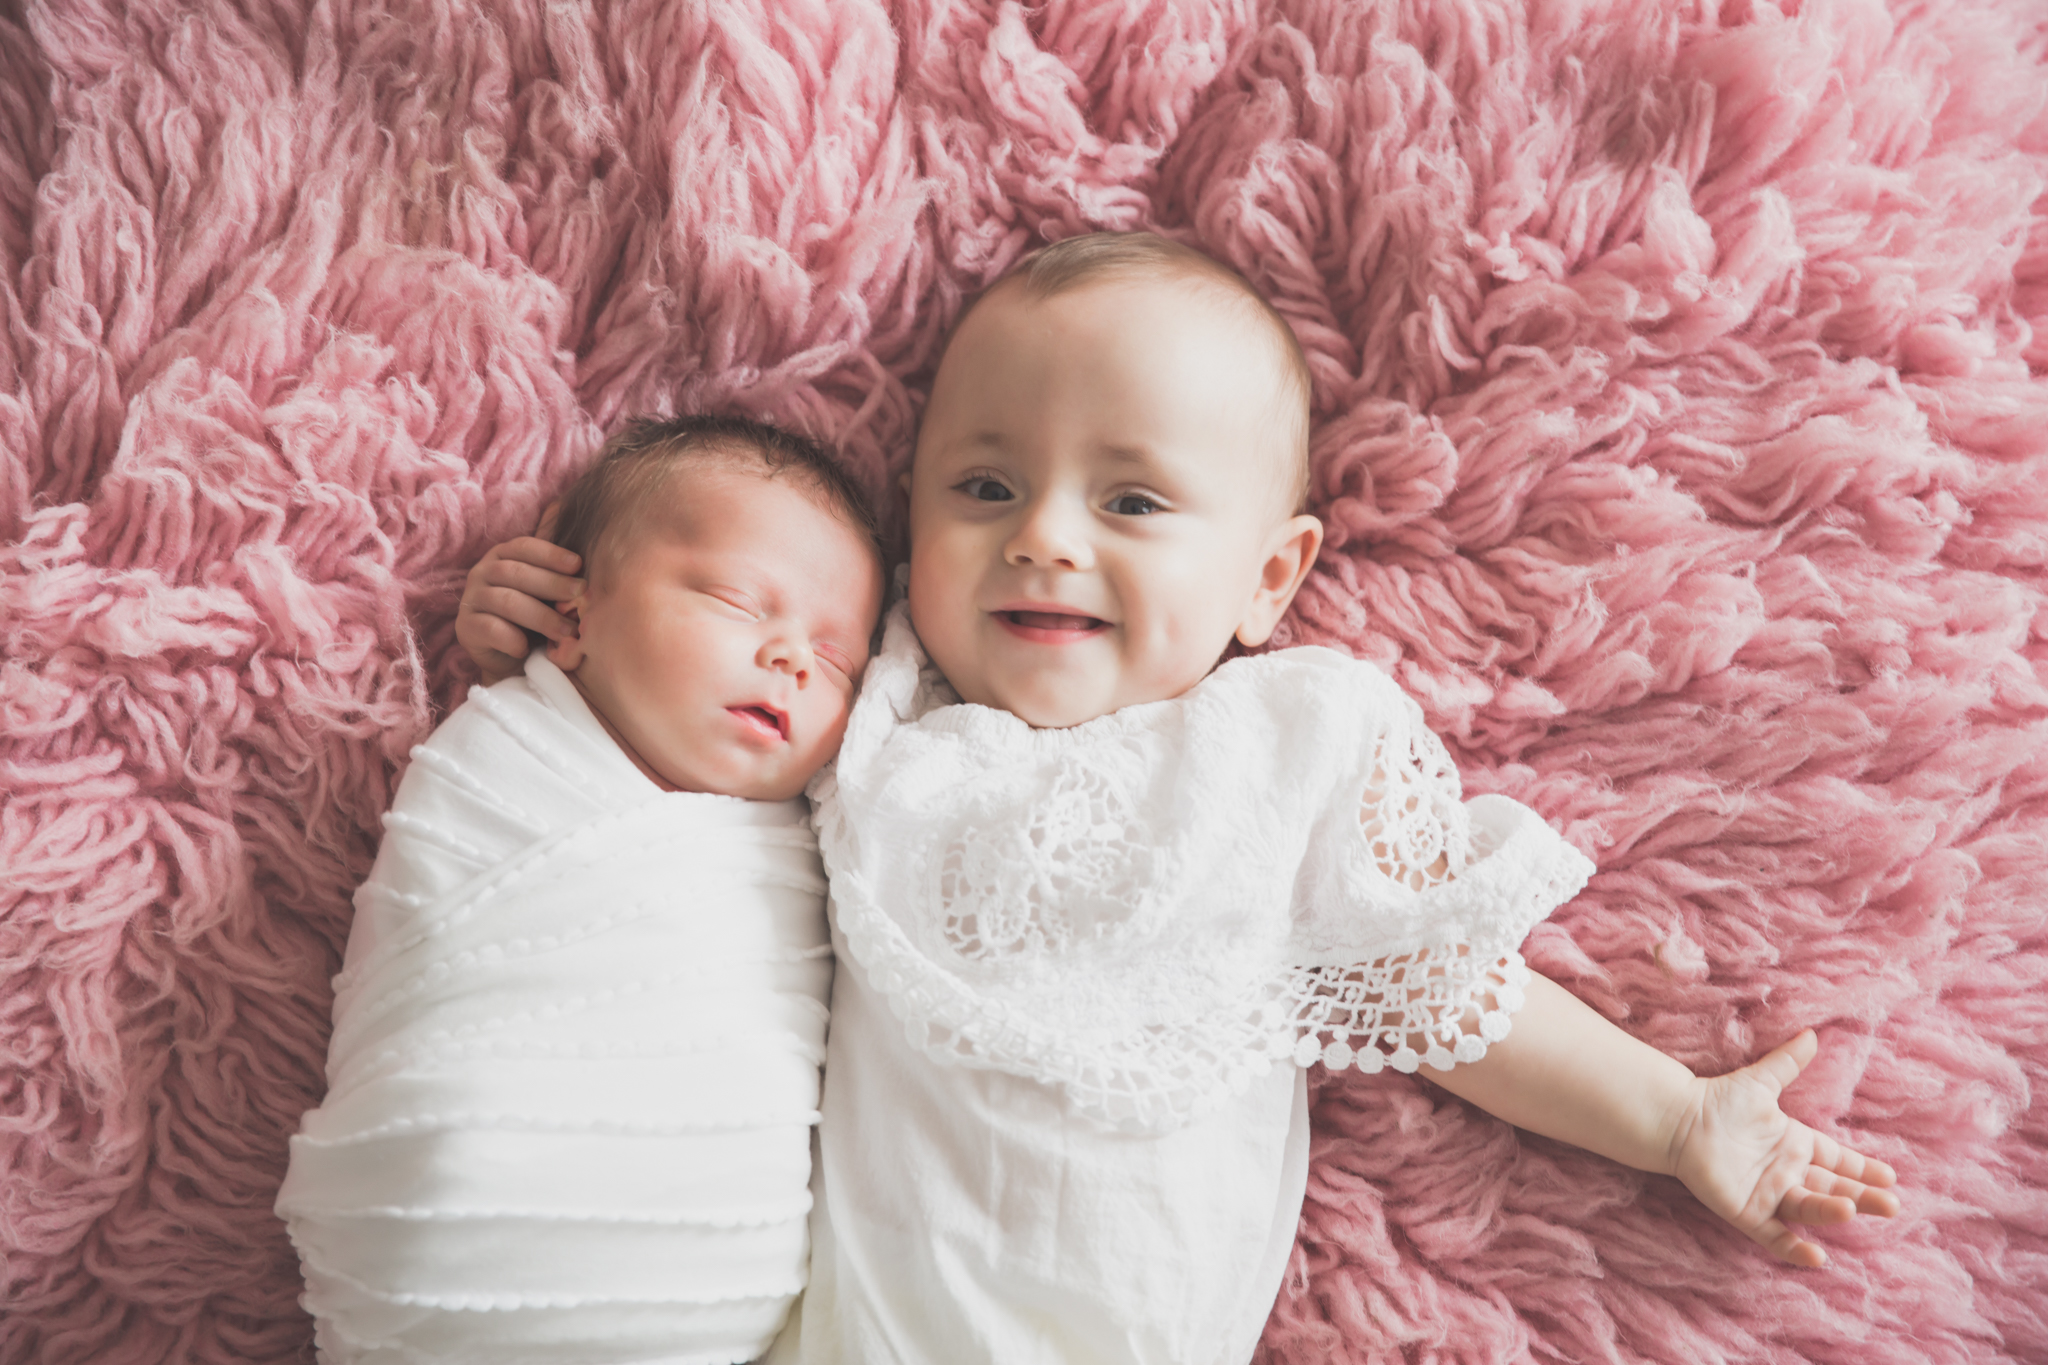 Sibling photos Newborn session photographer lifestyle studio - Cara Peterson Photography Rockford IL-1-5.jpg